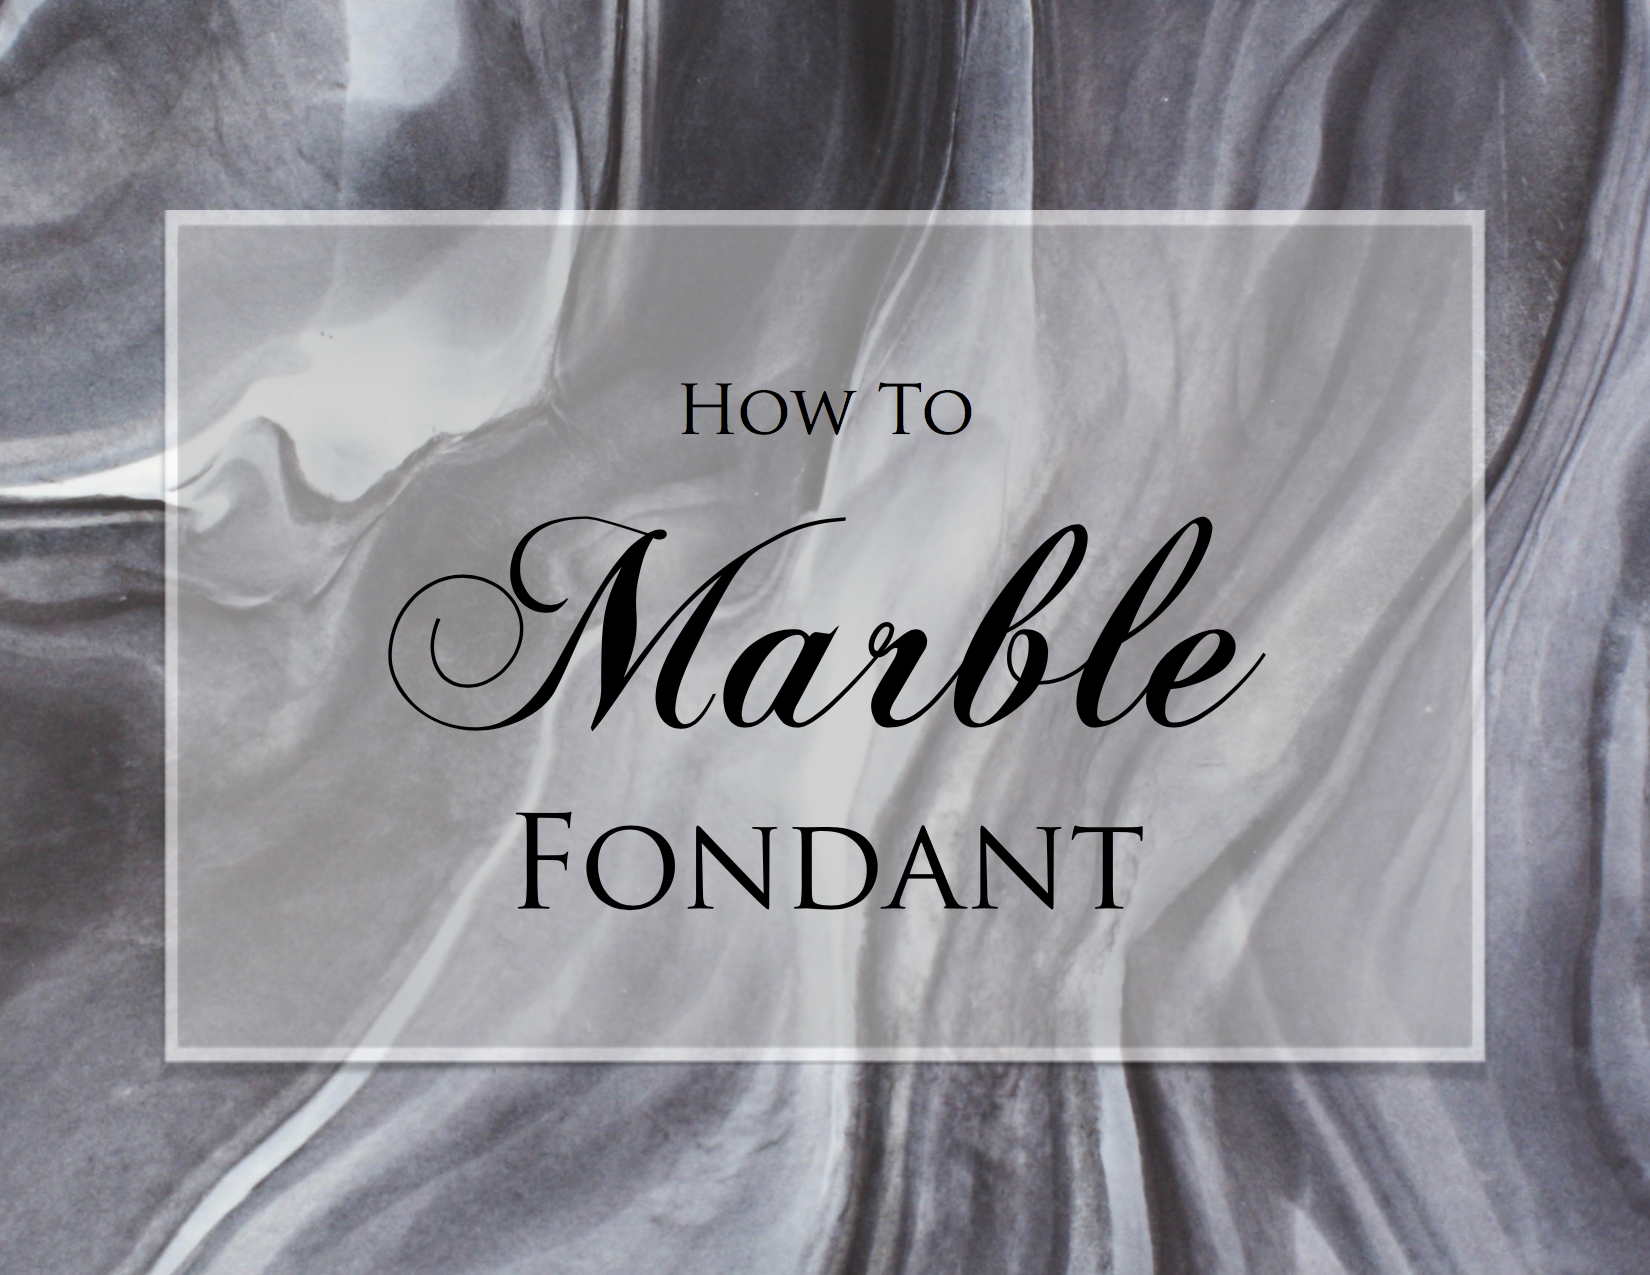 How to Marble Fondant | Erin Gardner